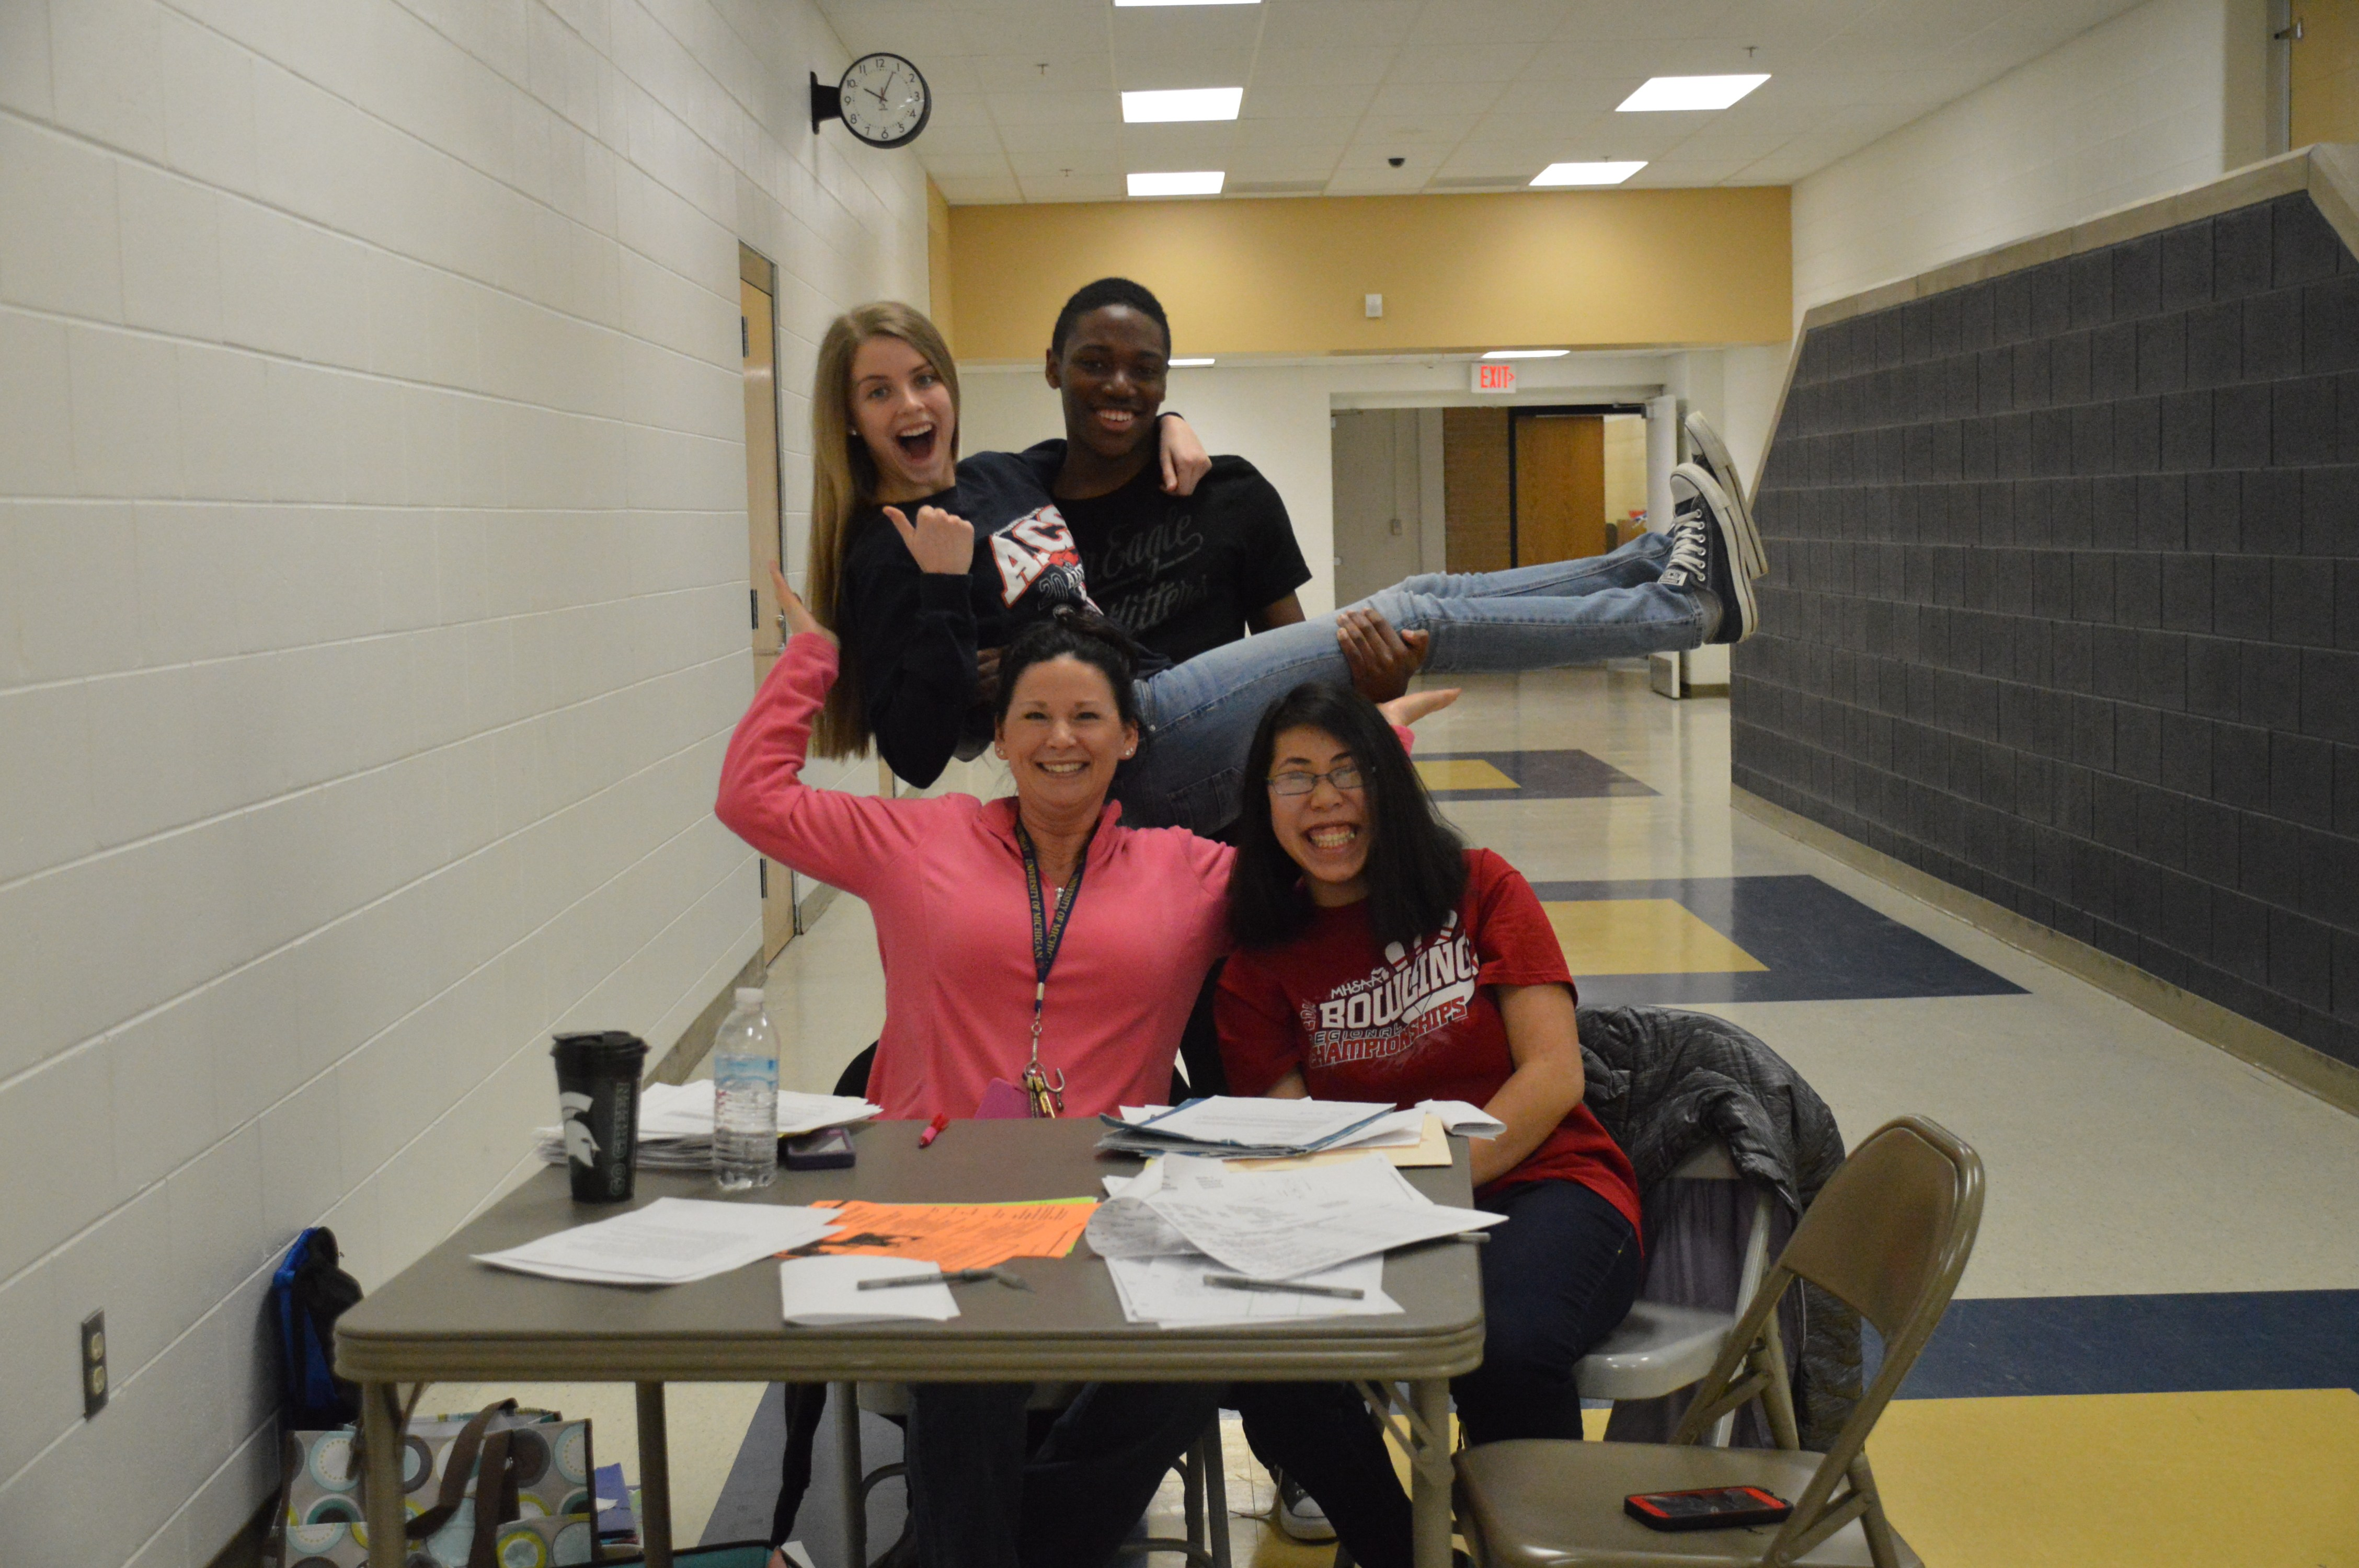 NHS Advisor Julie Bukowski, poses with her students while running the blood drive.